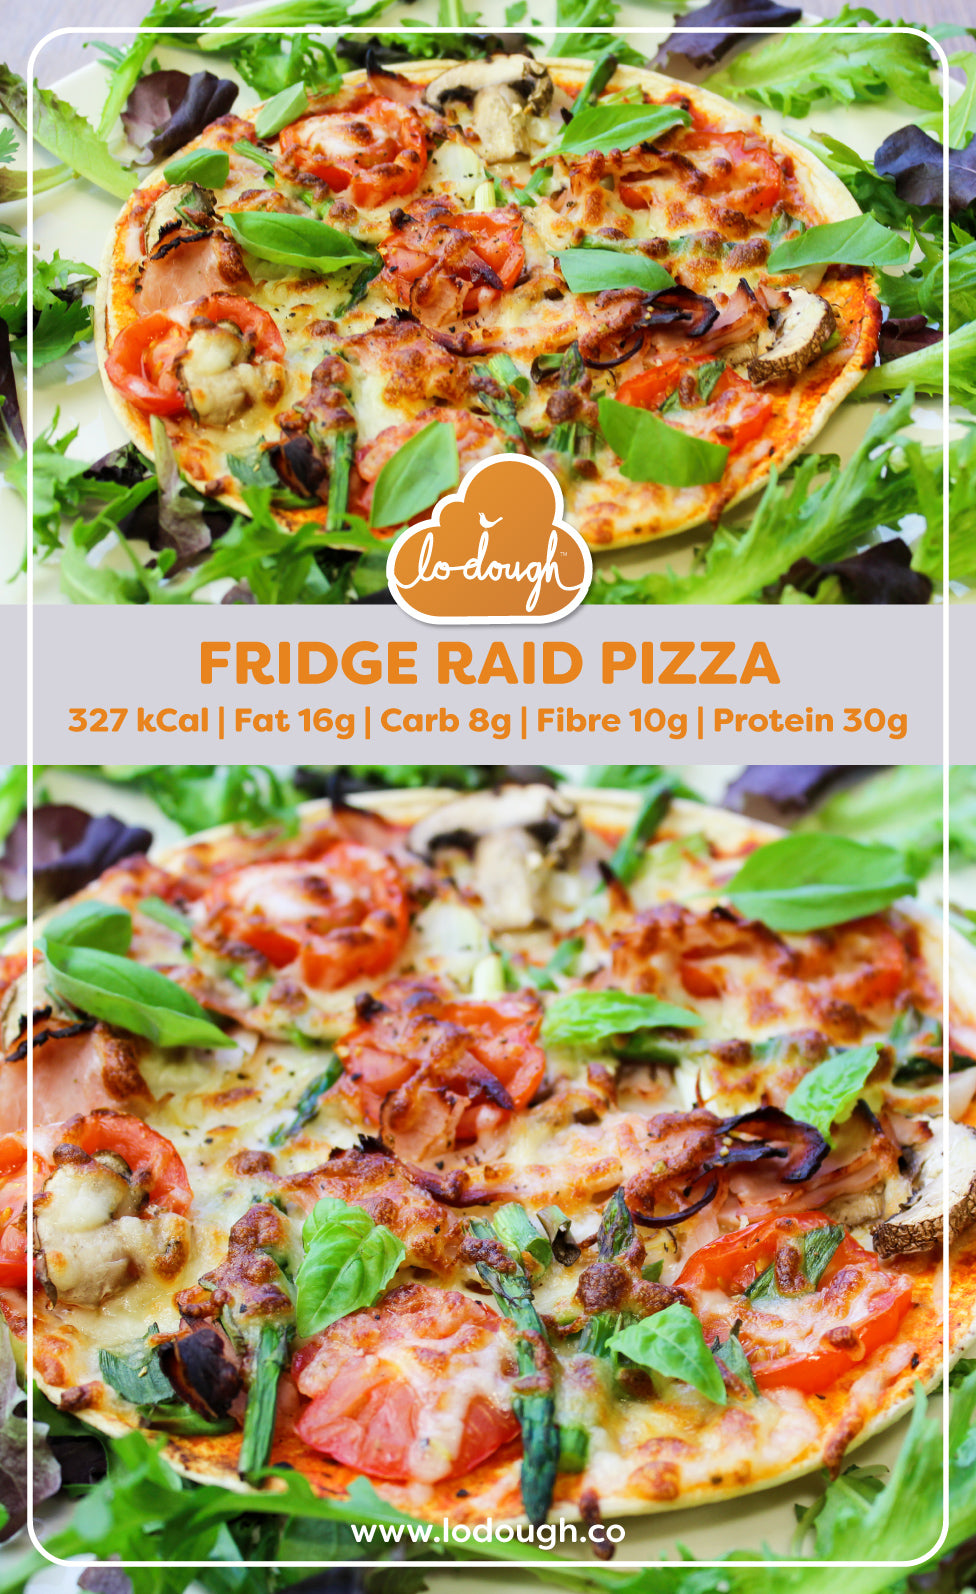 Fridge Raid Pizza